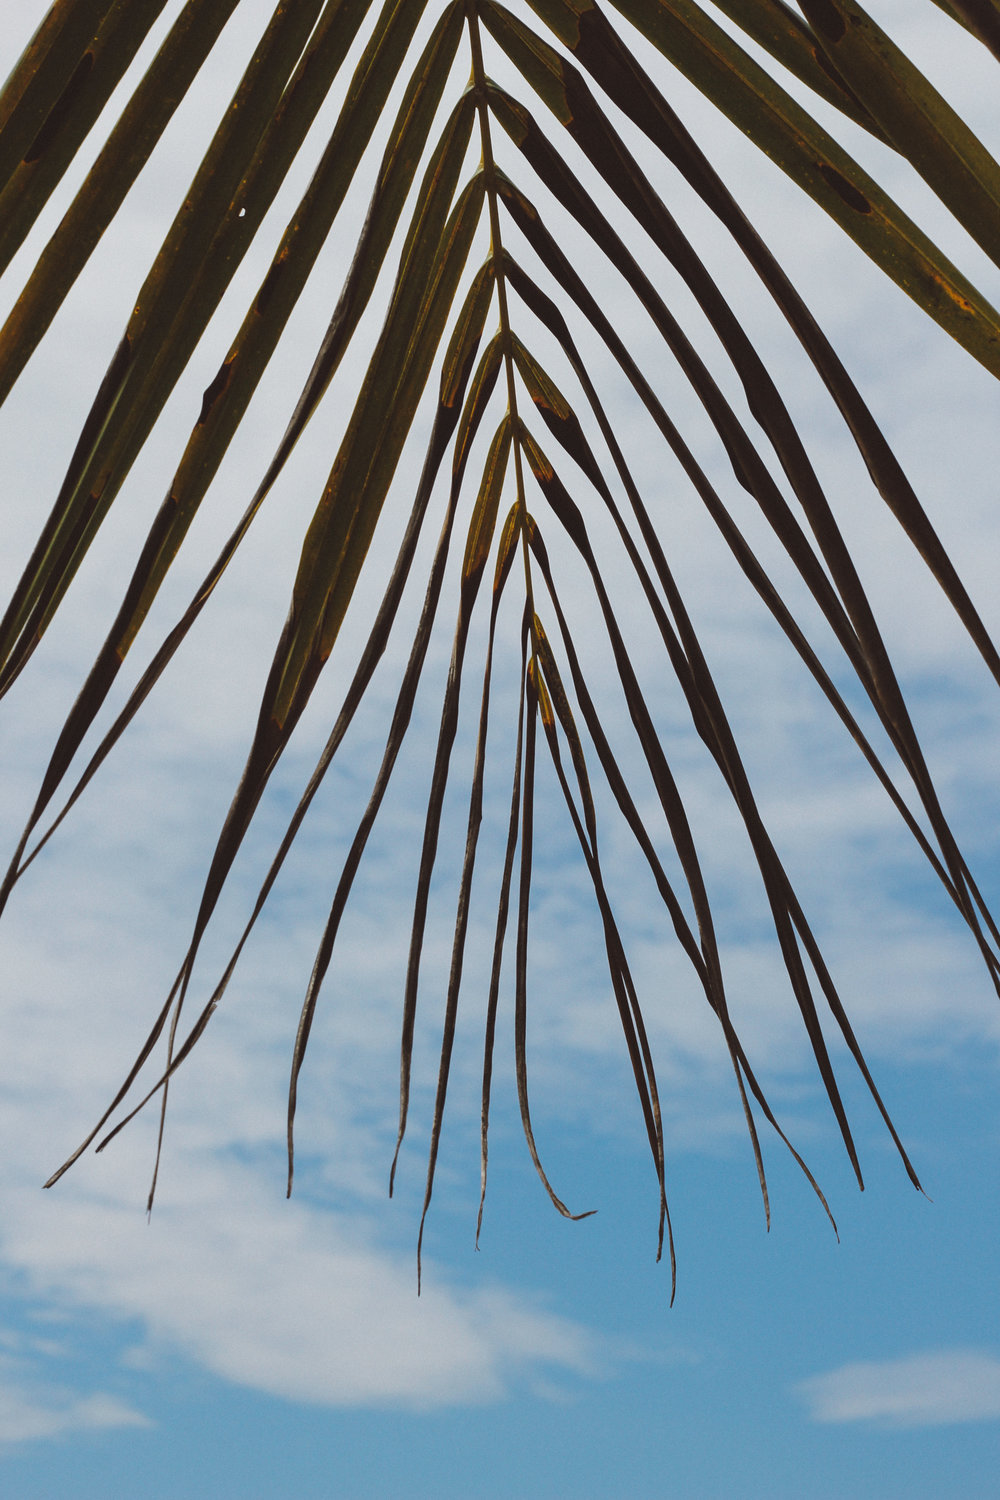 One of the best activities to partake in?  Laying on the beach and looking up at the palm fronds.